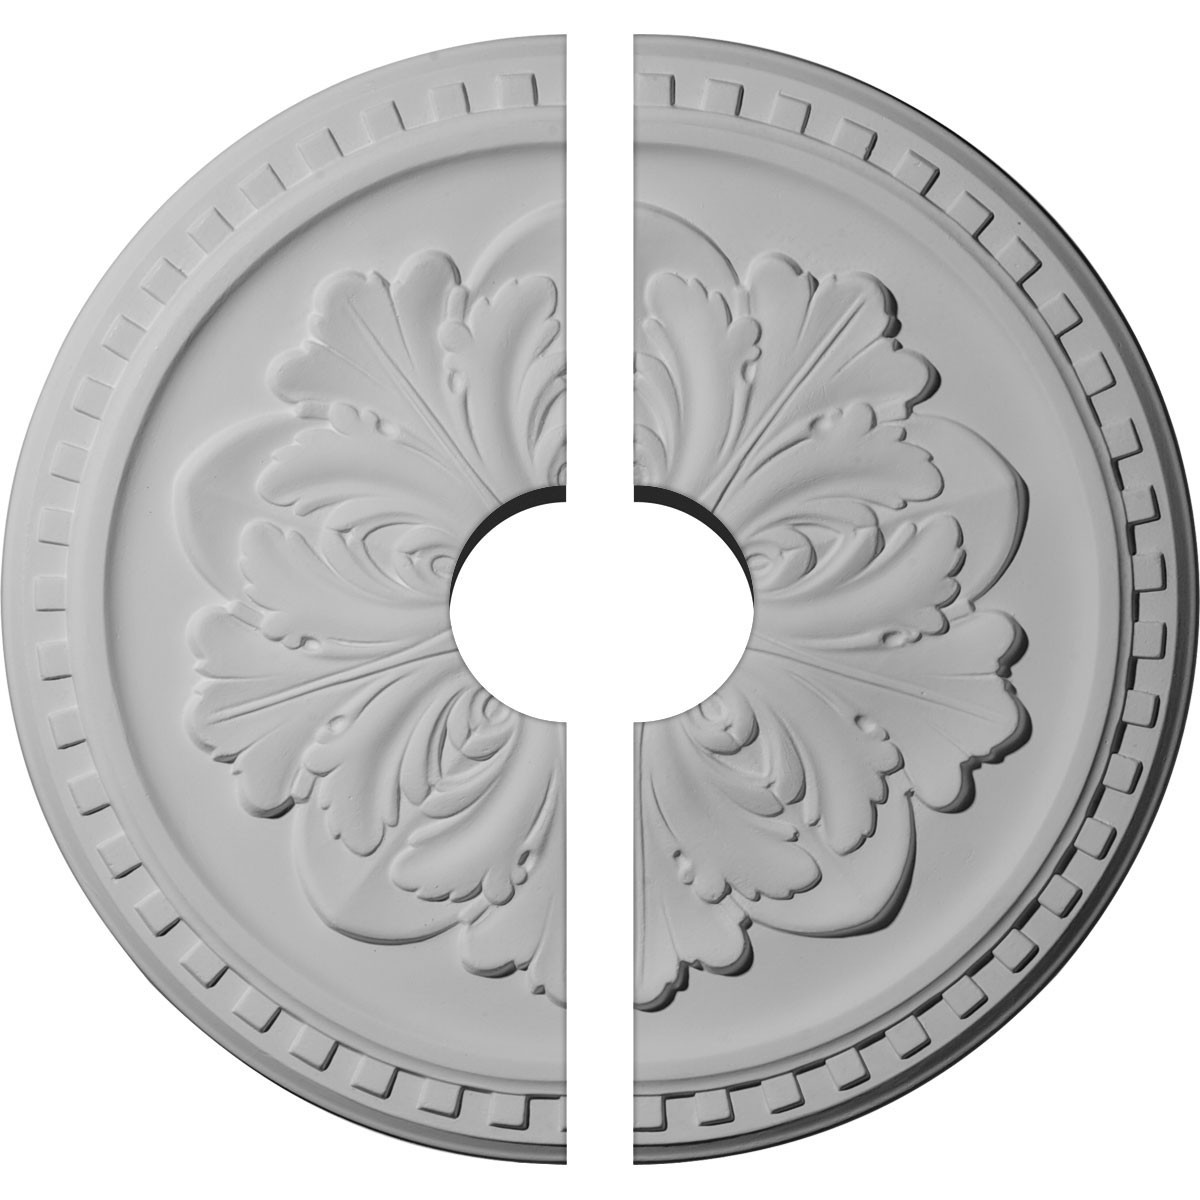 """EM-CM16ER2-03500 - 16 7/8""""OD x 3 1/2""""ID x 5/8""""P Emeryville Ceiling Medallion, Two Piece (Fits Canopies up to 3 1/2"""")"""